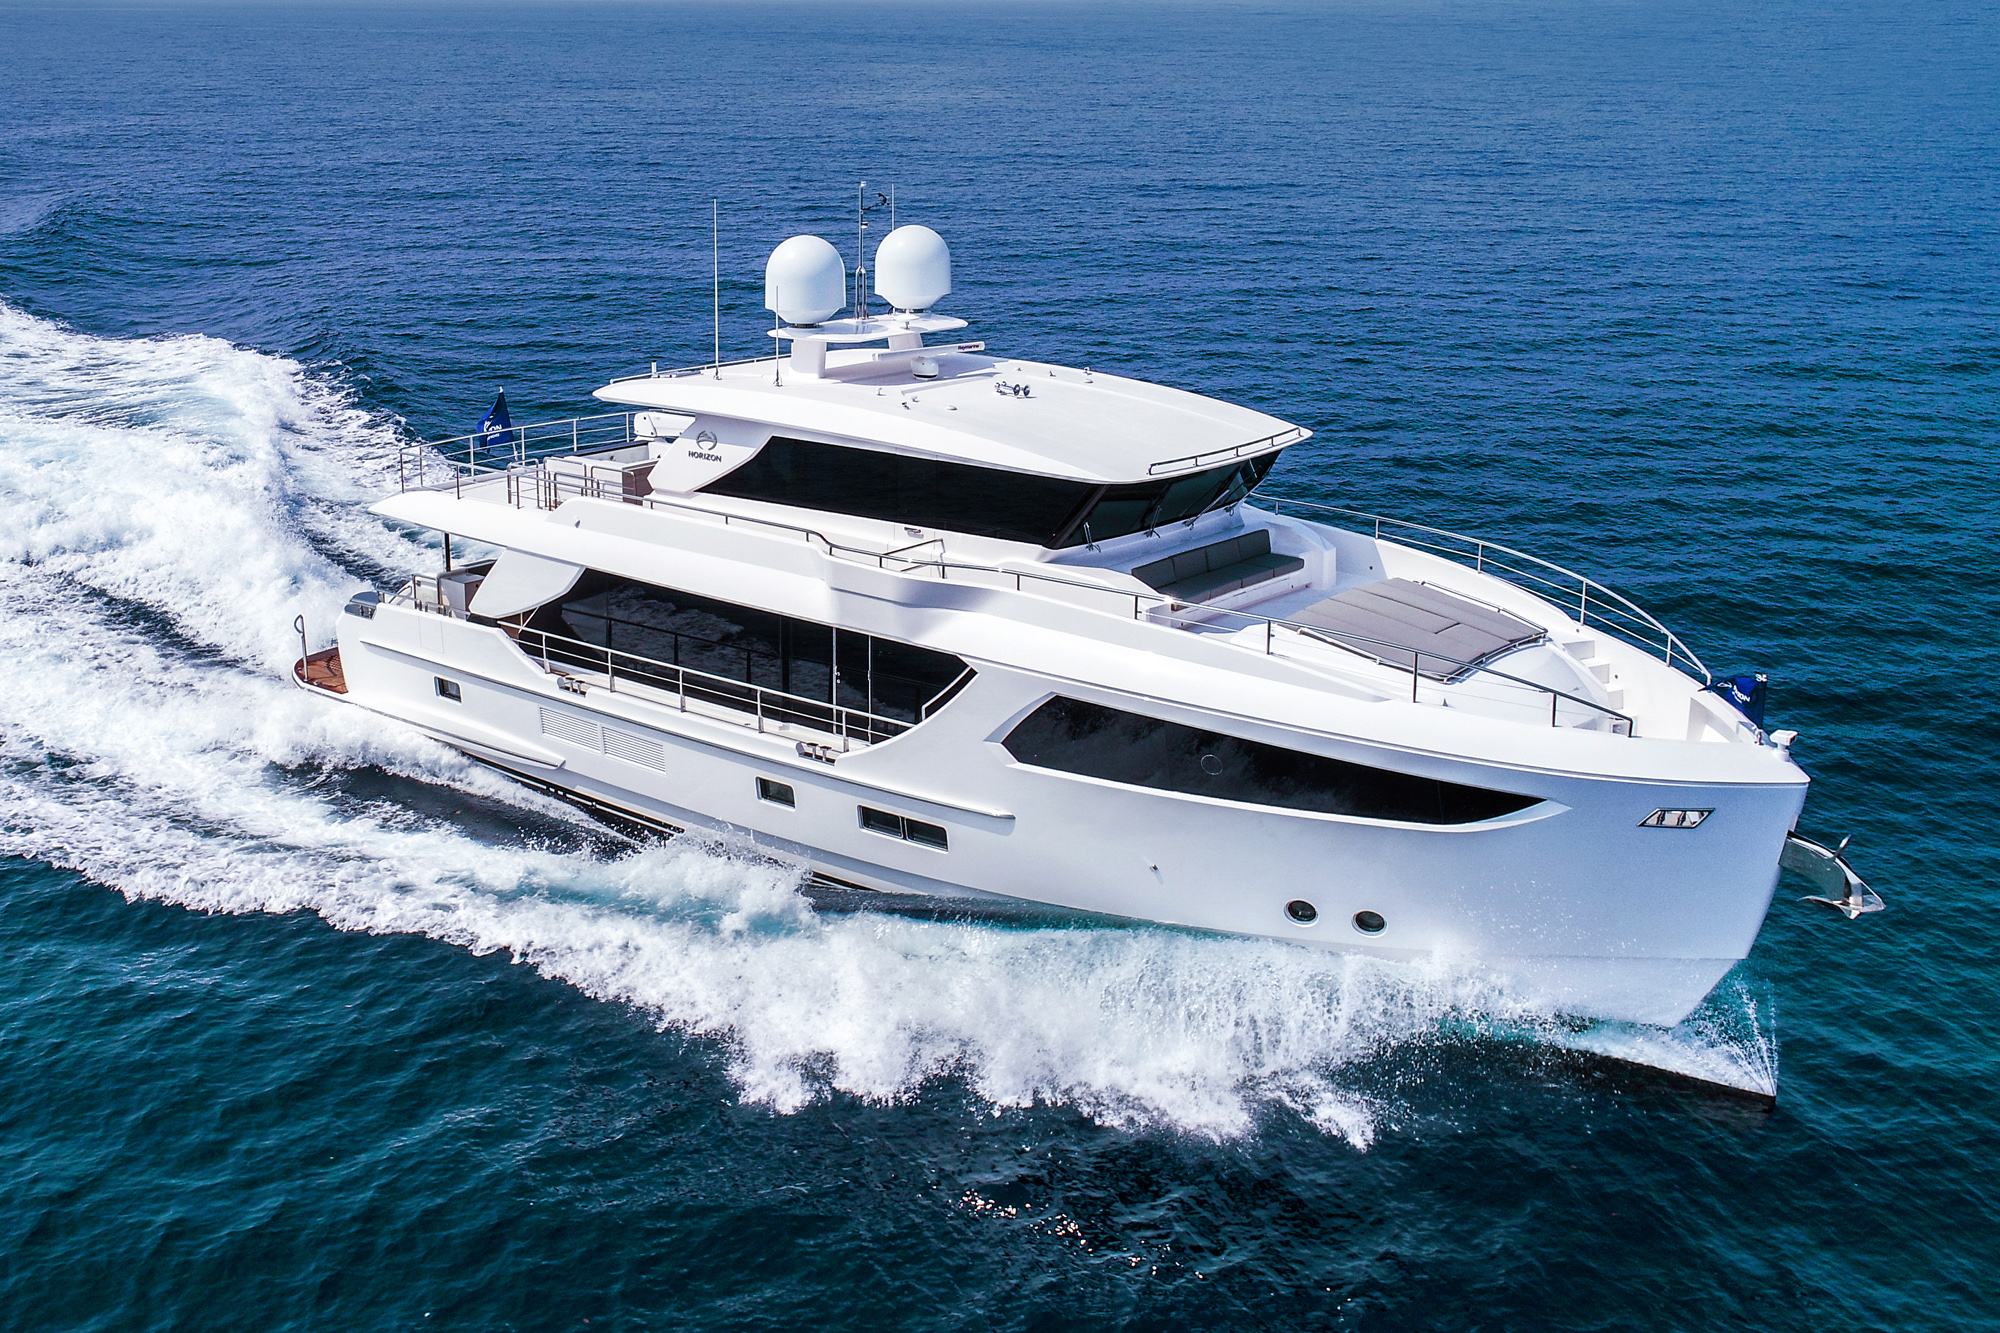 80feet luxury motor yacht / Horizon Yacht Co., Ltd.